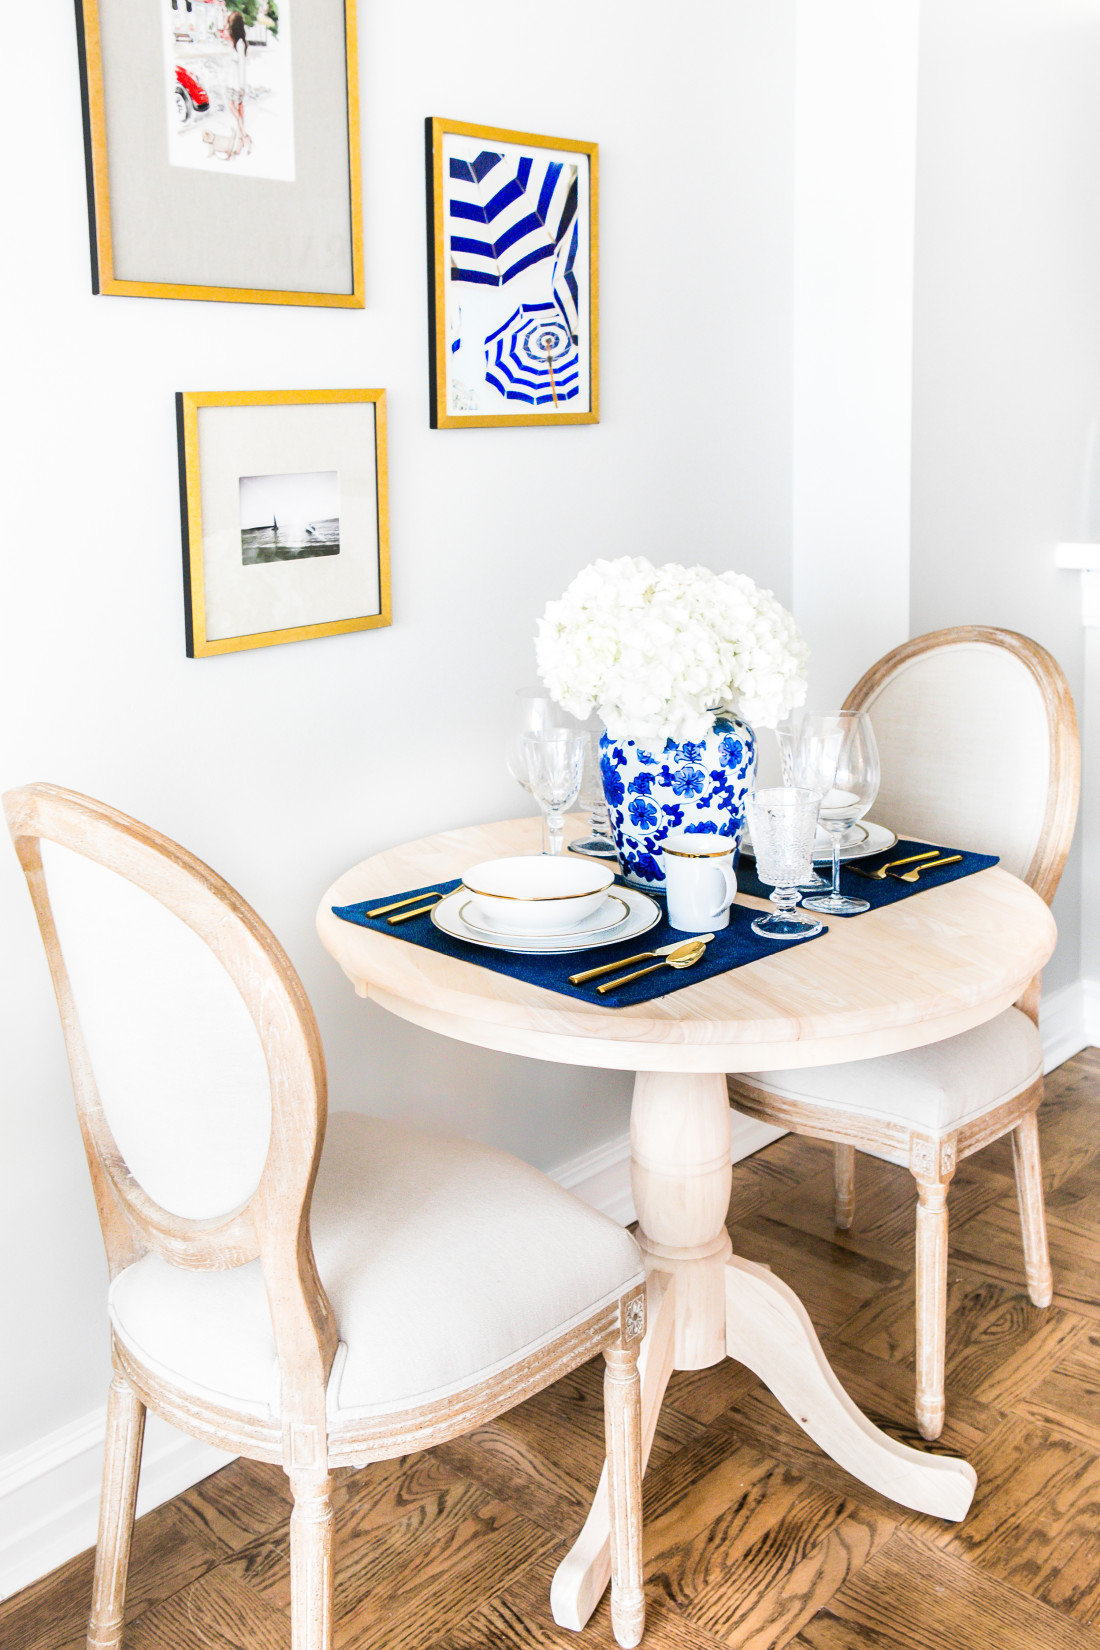 Joss-And-Main-Dinning-Table-White-French-Chairs-Dinning-Room